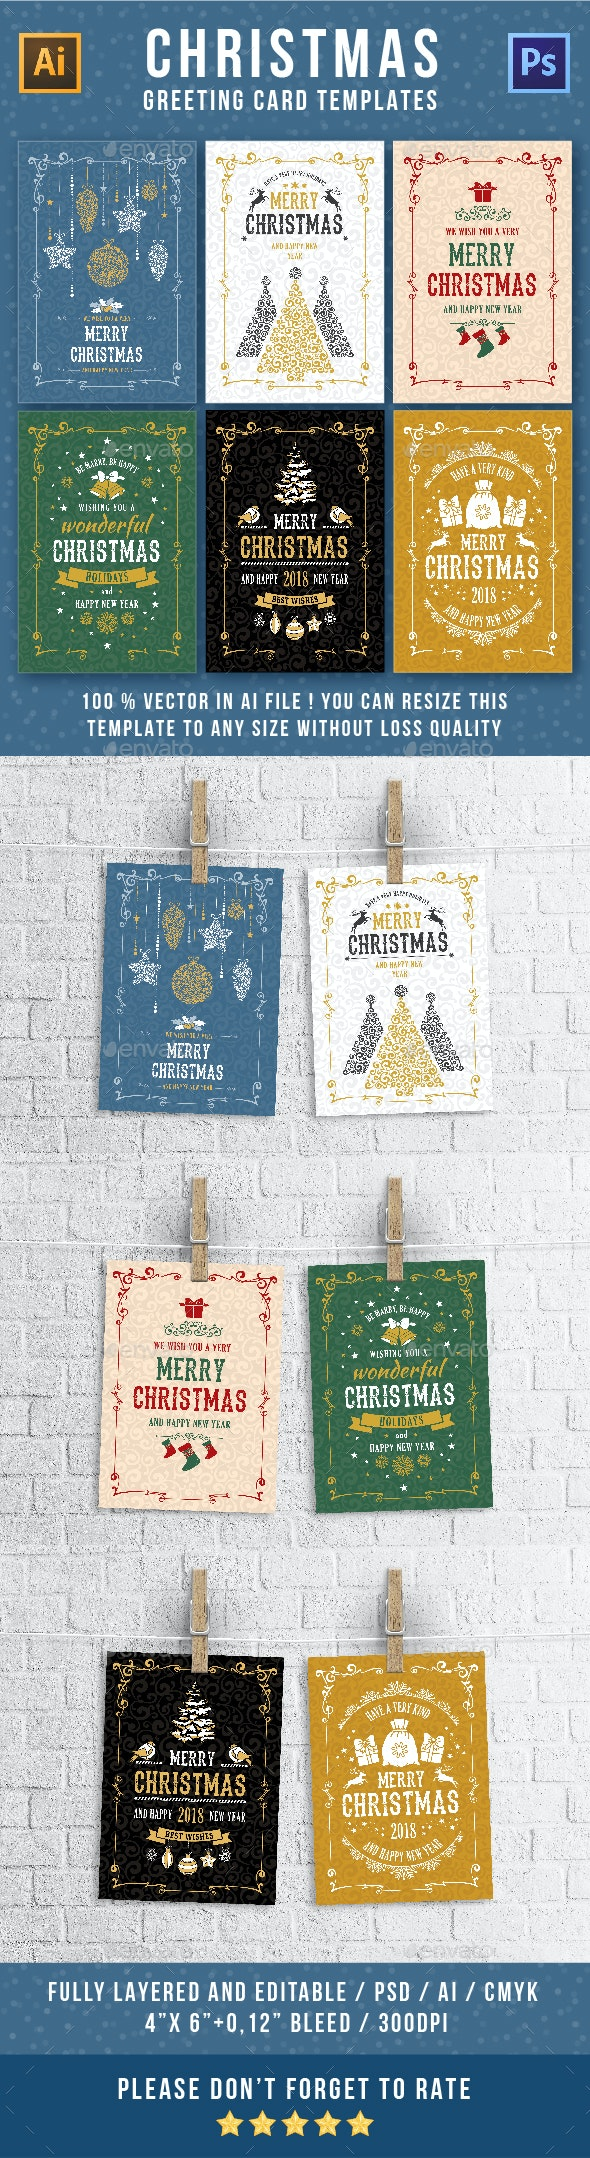 Christmas Greeting Cards Templates Set - Greeting Cards Cards & Invites